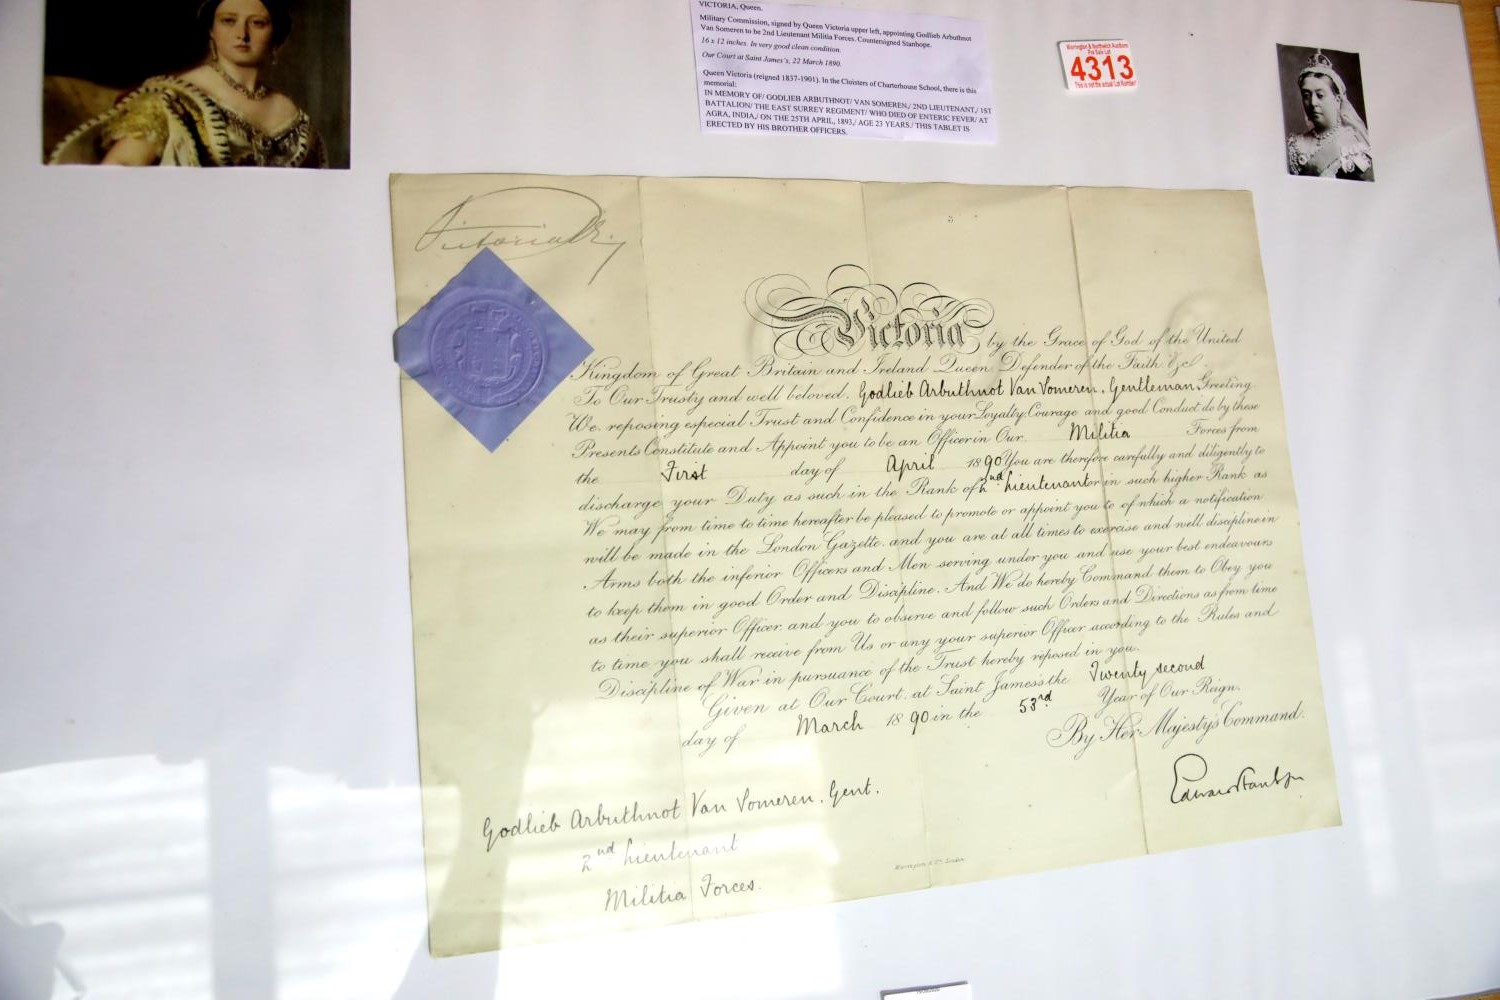 Lot 3031 - Victoria, a military commission signed by Queen Victoria upper-left, appointing Godlieb Arbuthnot